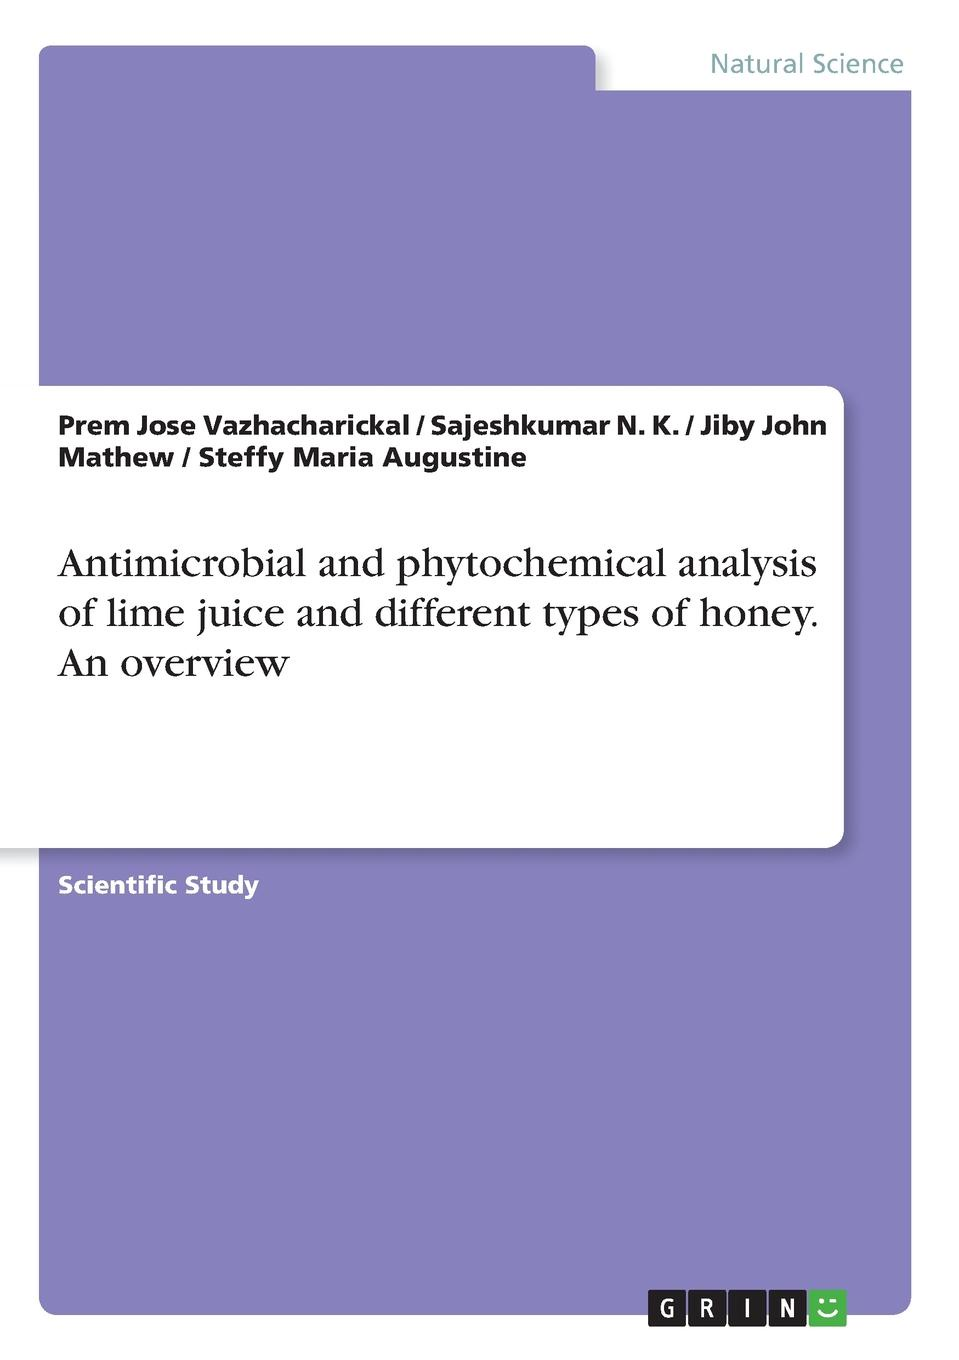 Jiby John Mathew, Prem Jose Vazhacharickal, Sajeshkumar N. K. Antimicrobial and phytochemical analysis of lime juice and different types of honey. An overview jiby john mathew prem jose vazhacharickal sajeshkumar n k the honey apple and its phytochemical analysis